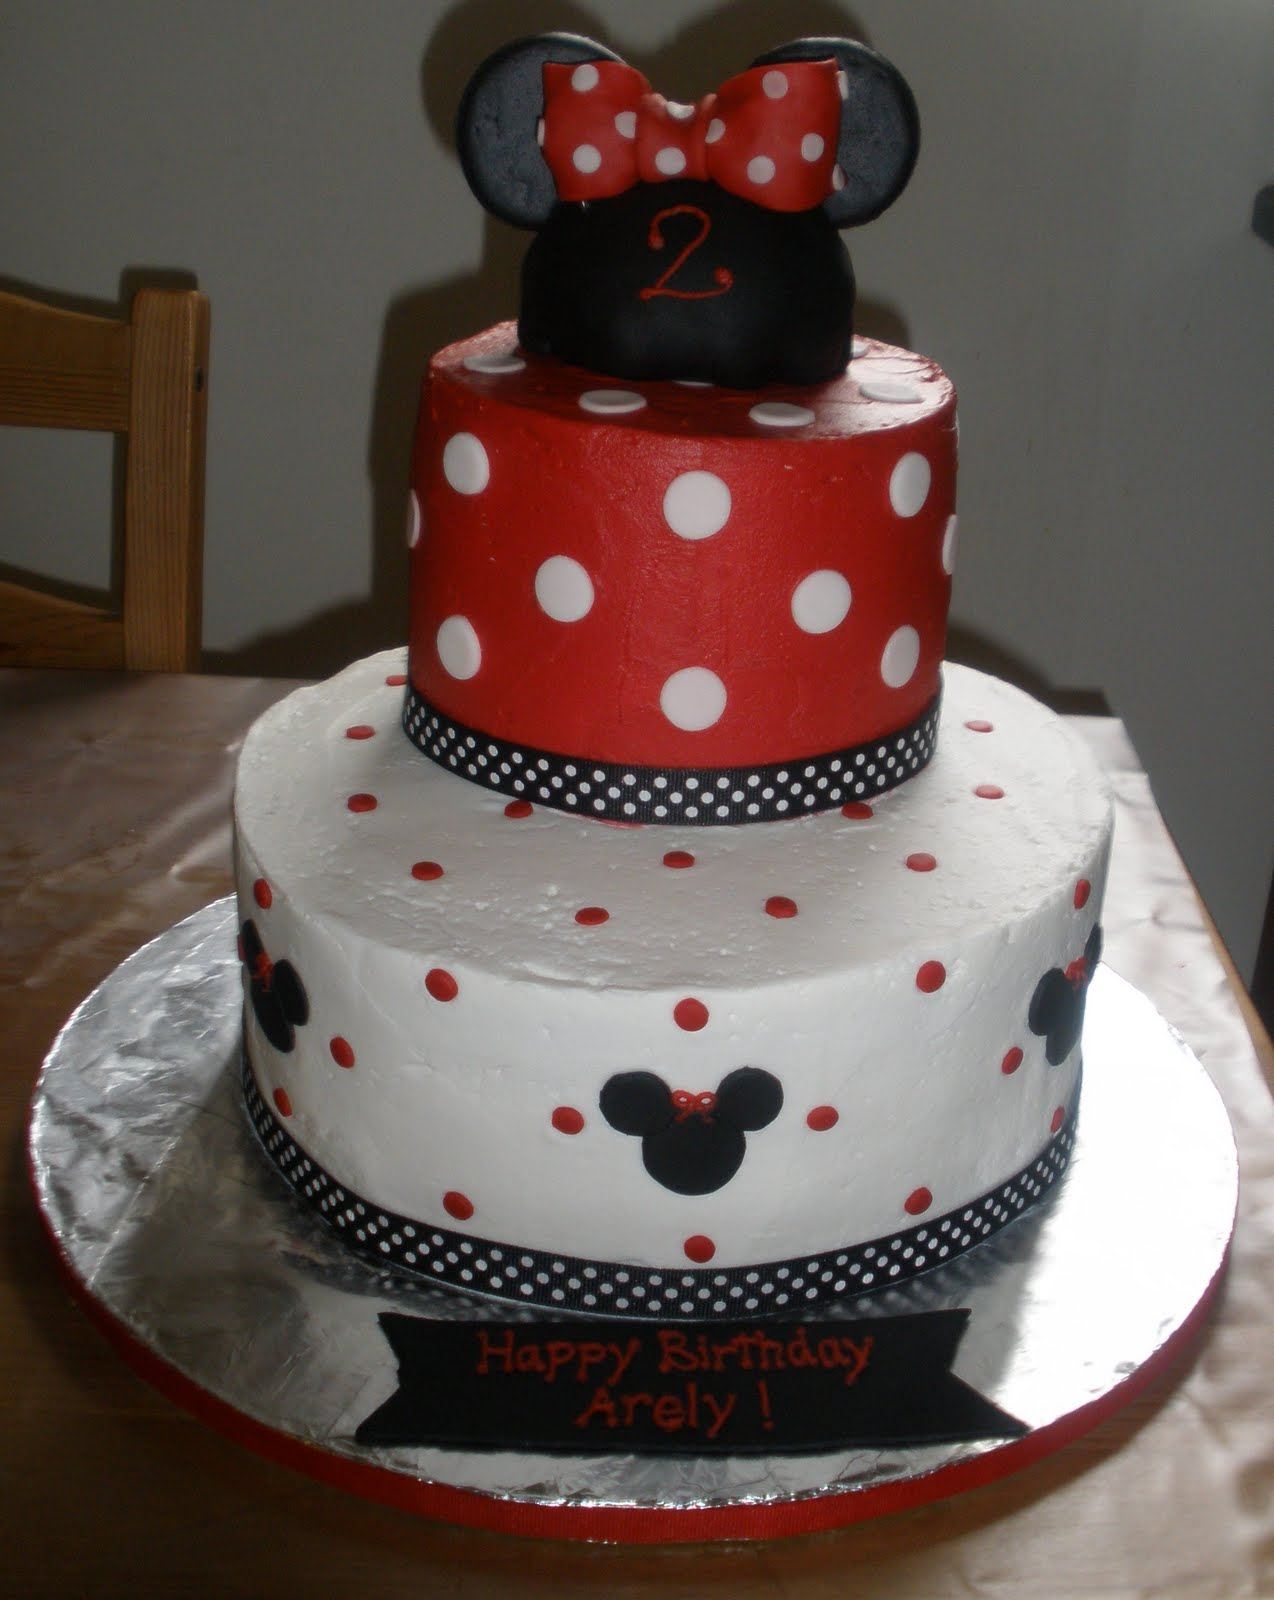 Minnie Mouse Images For Cake : Cakes By Perla: Minnie Mouse Cake